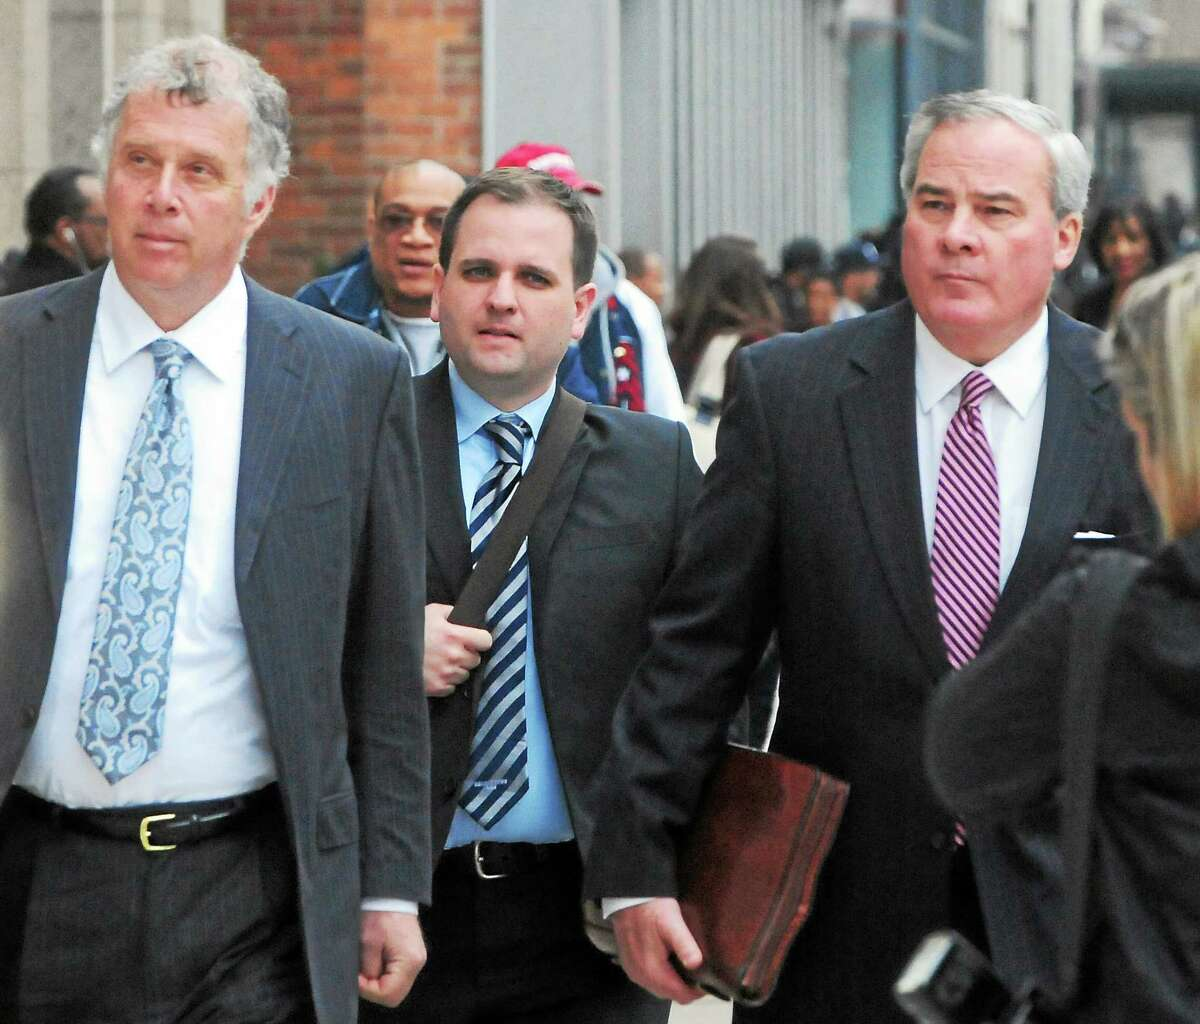 File photo: Former Connecticut Governor John G. Rowland, right, arrives with his attorney Reid Weingarten, far left, at the Federal Courthouse in New Haven Friday afternoon, April 11, 2014.